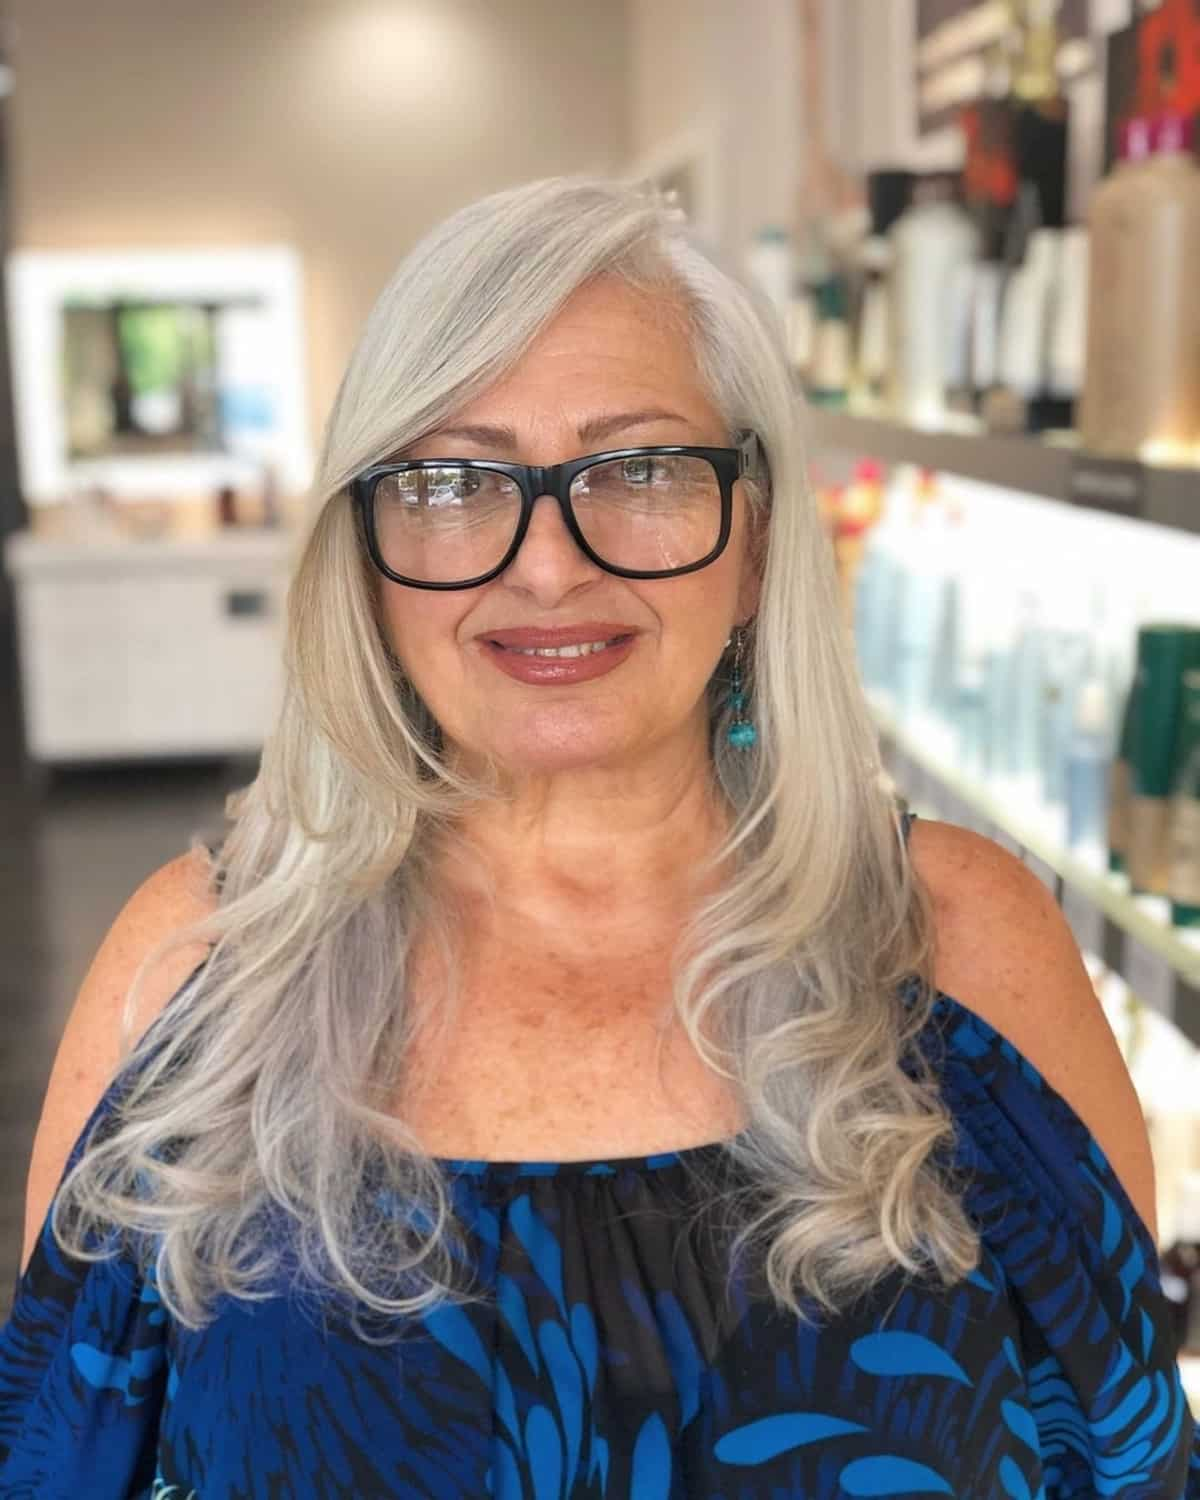 16 Most Slimming Hairstyles for Women Over 50 with Round Face Shapes